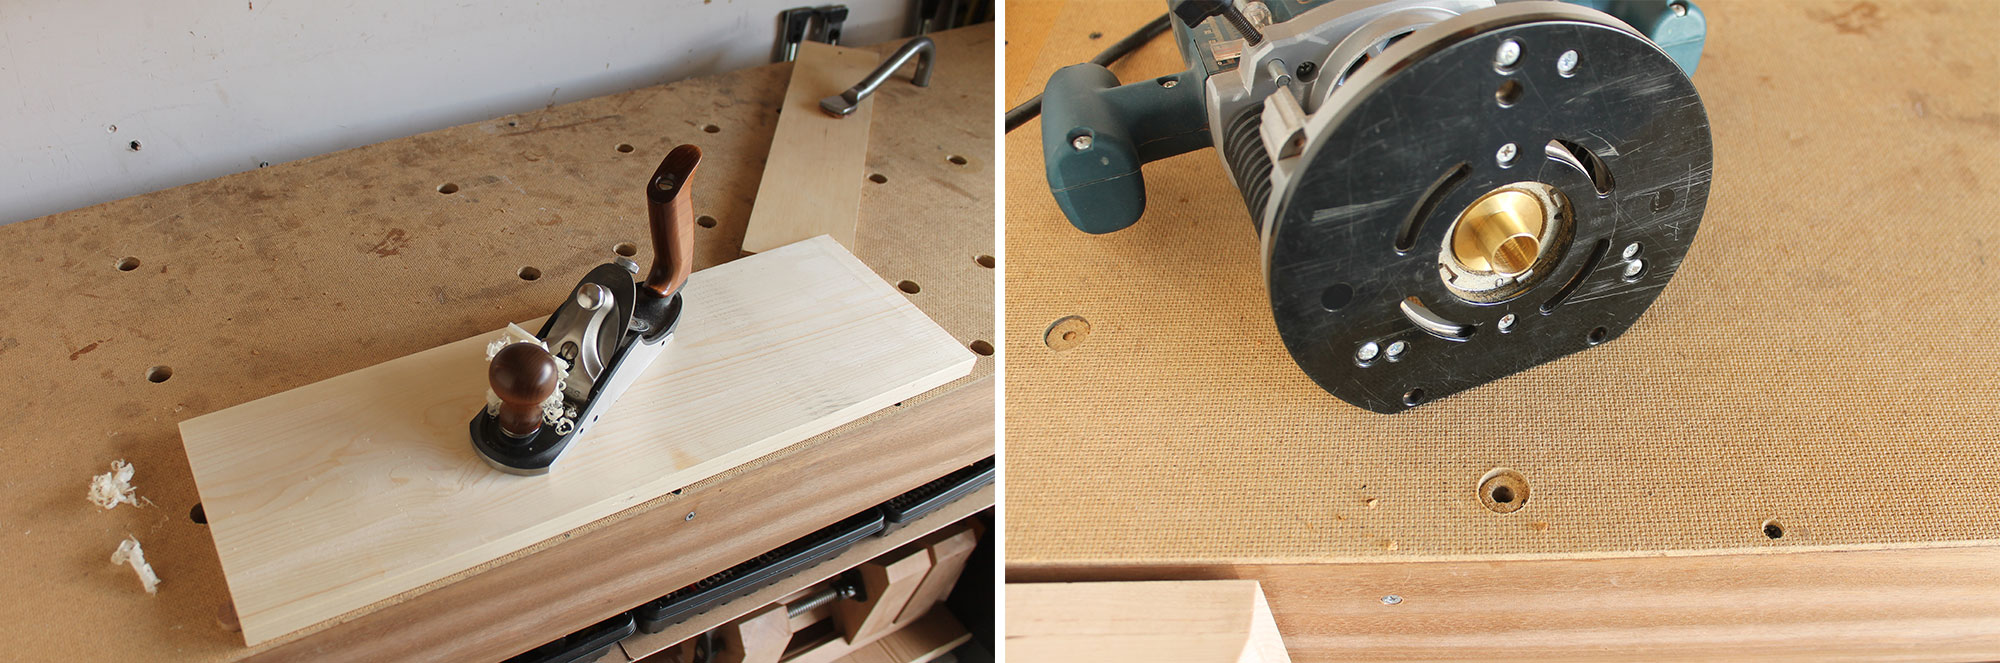 Left: Workholding with a doe's foot. Right: Drilling the waste.